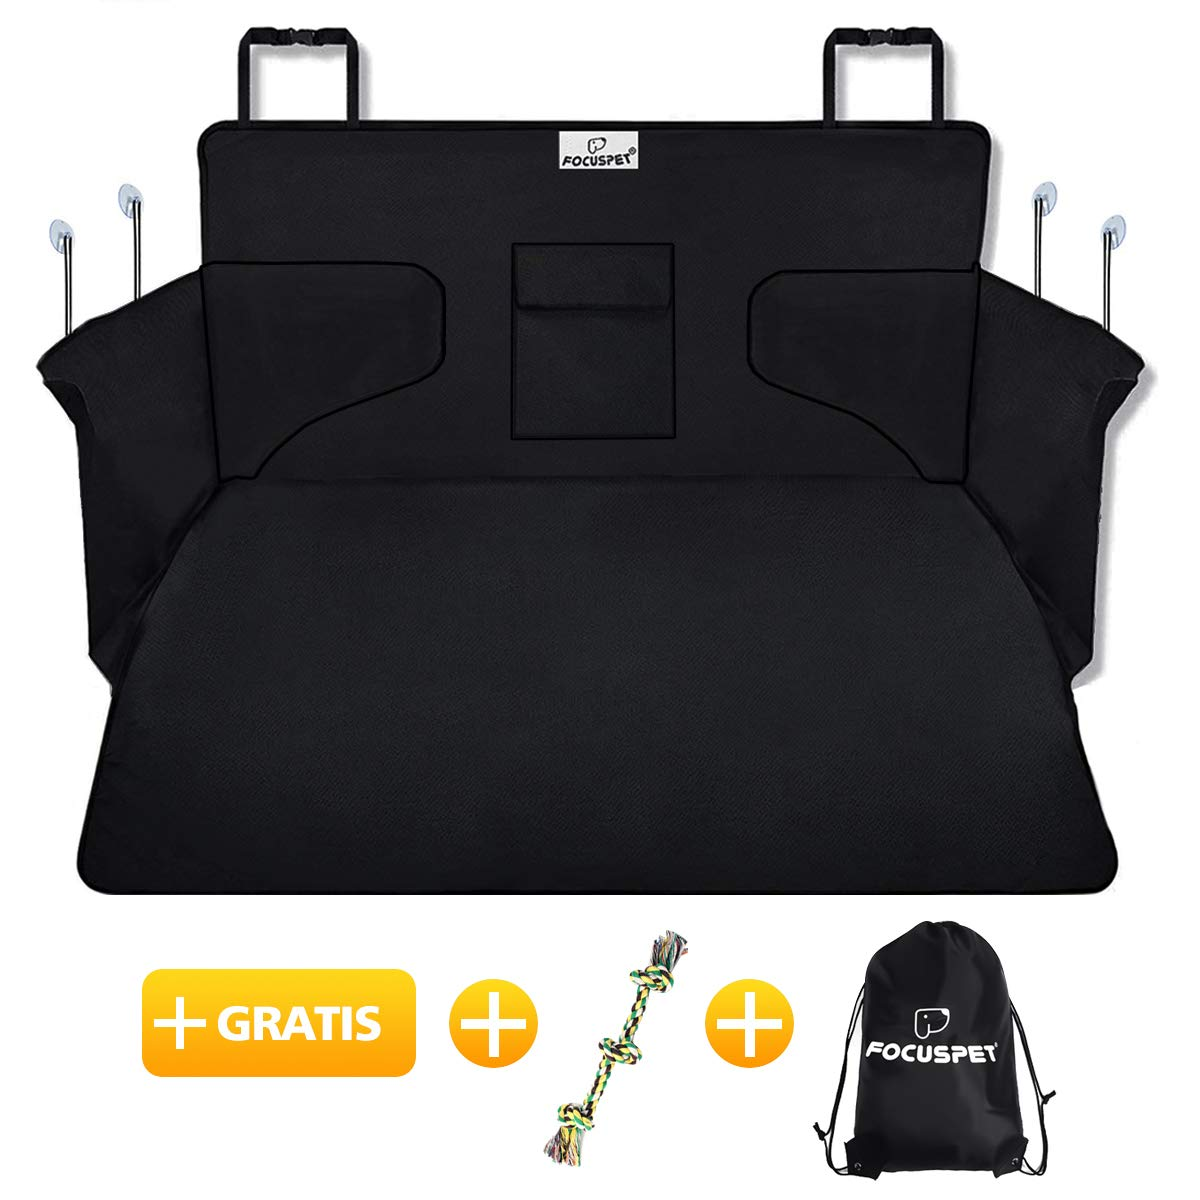 Car Boot Cover for Dogs, Focuspet Dog Cargo Liner Cover Pet Seat Cover Car Boot Predection Nonslip Waterproof Dirt Resistant Rear Seat with Side Predection 17510536 CM Universal for Car SUV Truck